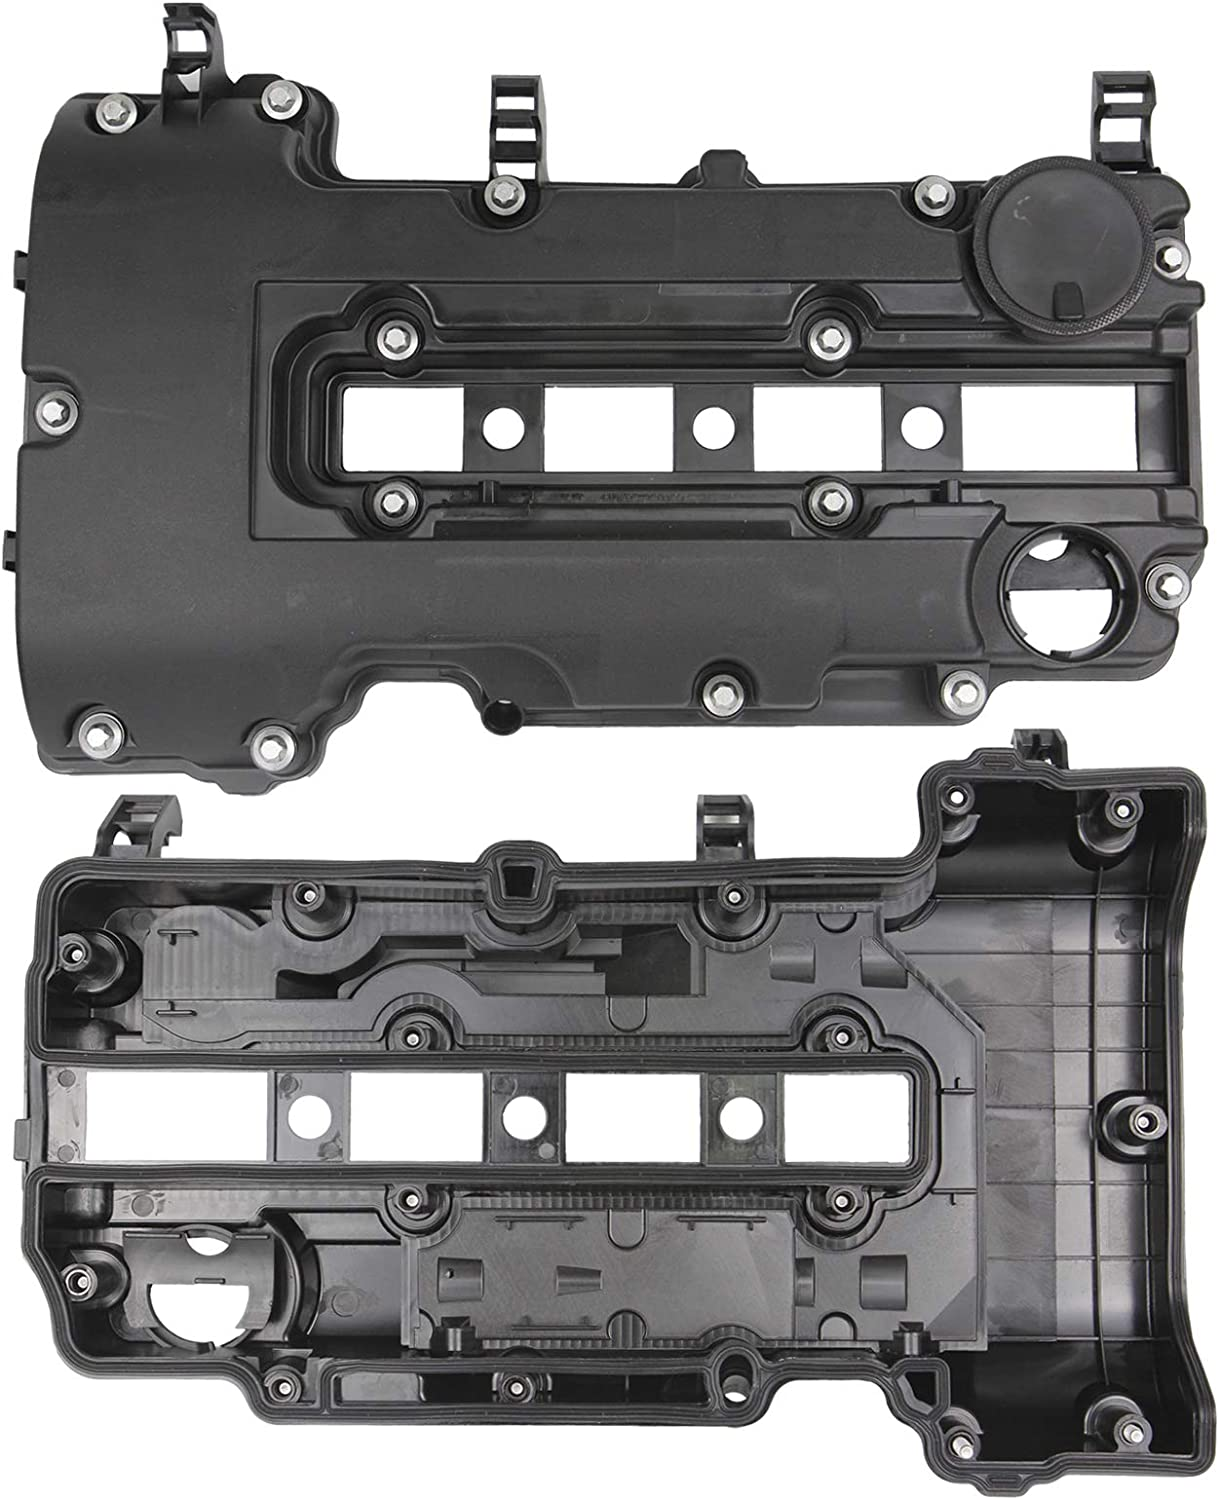 55573746 Engine Valve Cover Kit with Gaskets /& Bolts Compatible with 2011-2020 Chevrolet Chevy Cruze Sonic Volt Trax Buick Encore Cadillac ELR 1.4L L4 Turbo Replace#55573746 264-968 25198498